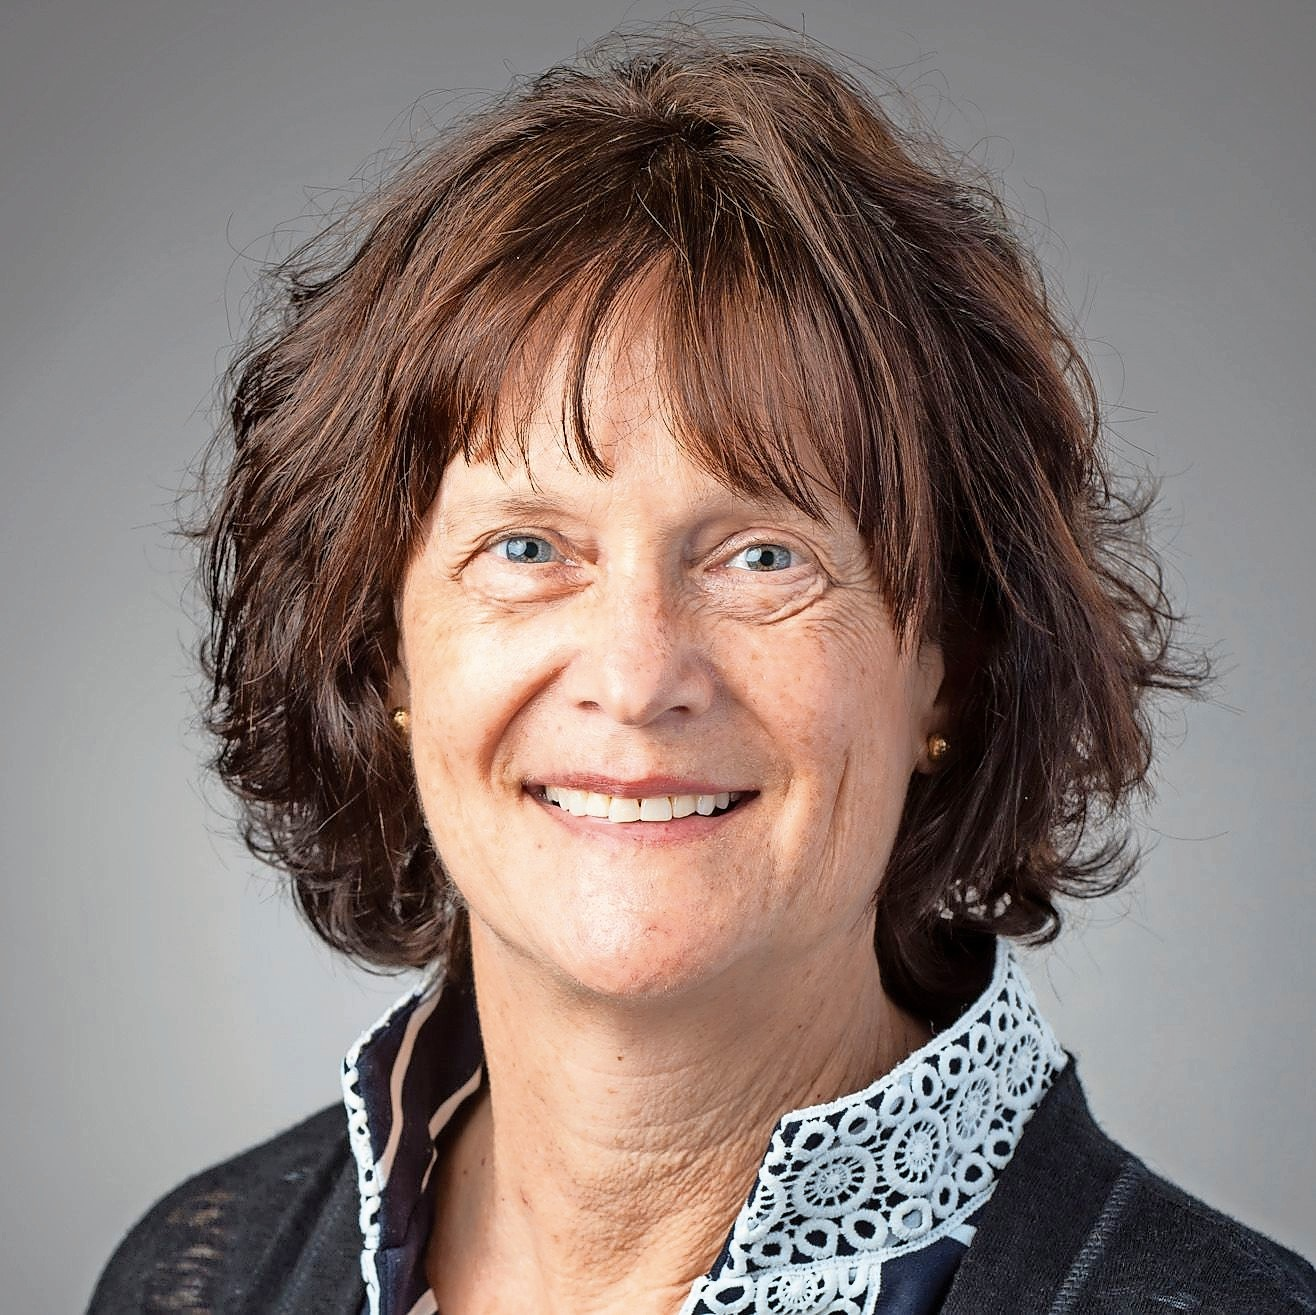 Janet Rovenpor has worked in various capacities at Manhattan College since 1991. Most recently, Rovenpor is working as the associate dean of the O?Malley School of Business, and is serving as interim dean until Don Gibson arrives this summer from Fairfield University in Connecticut.